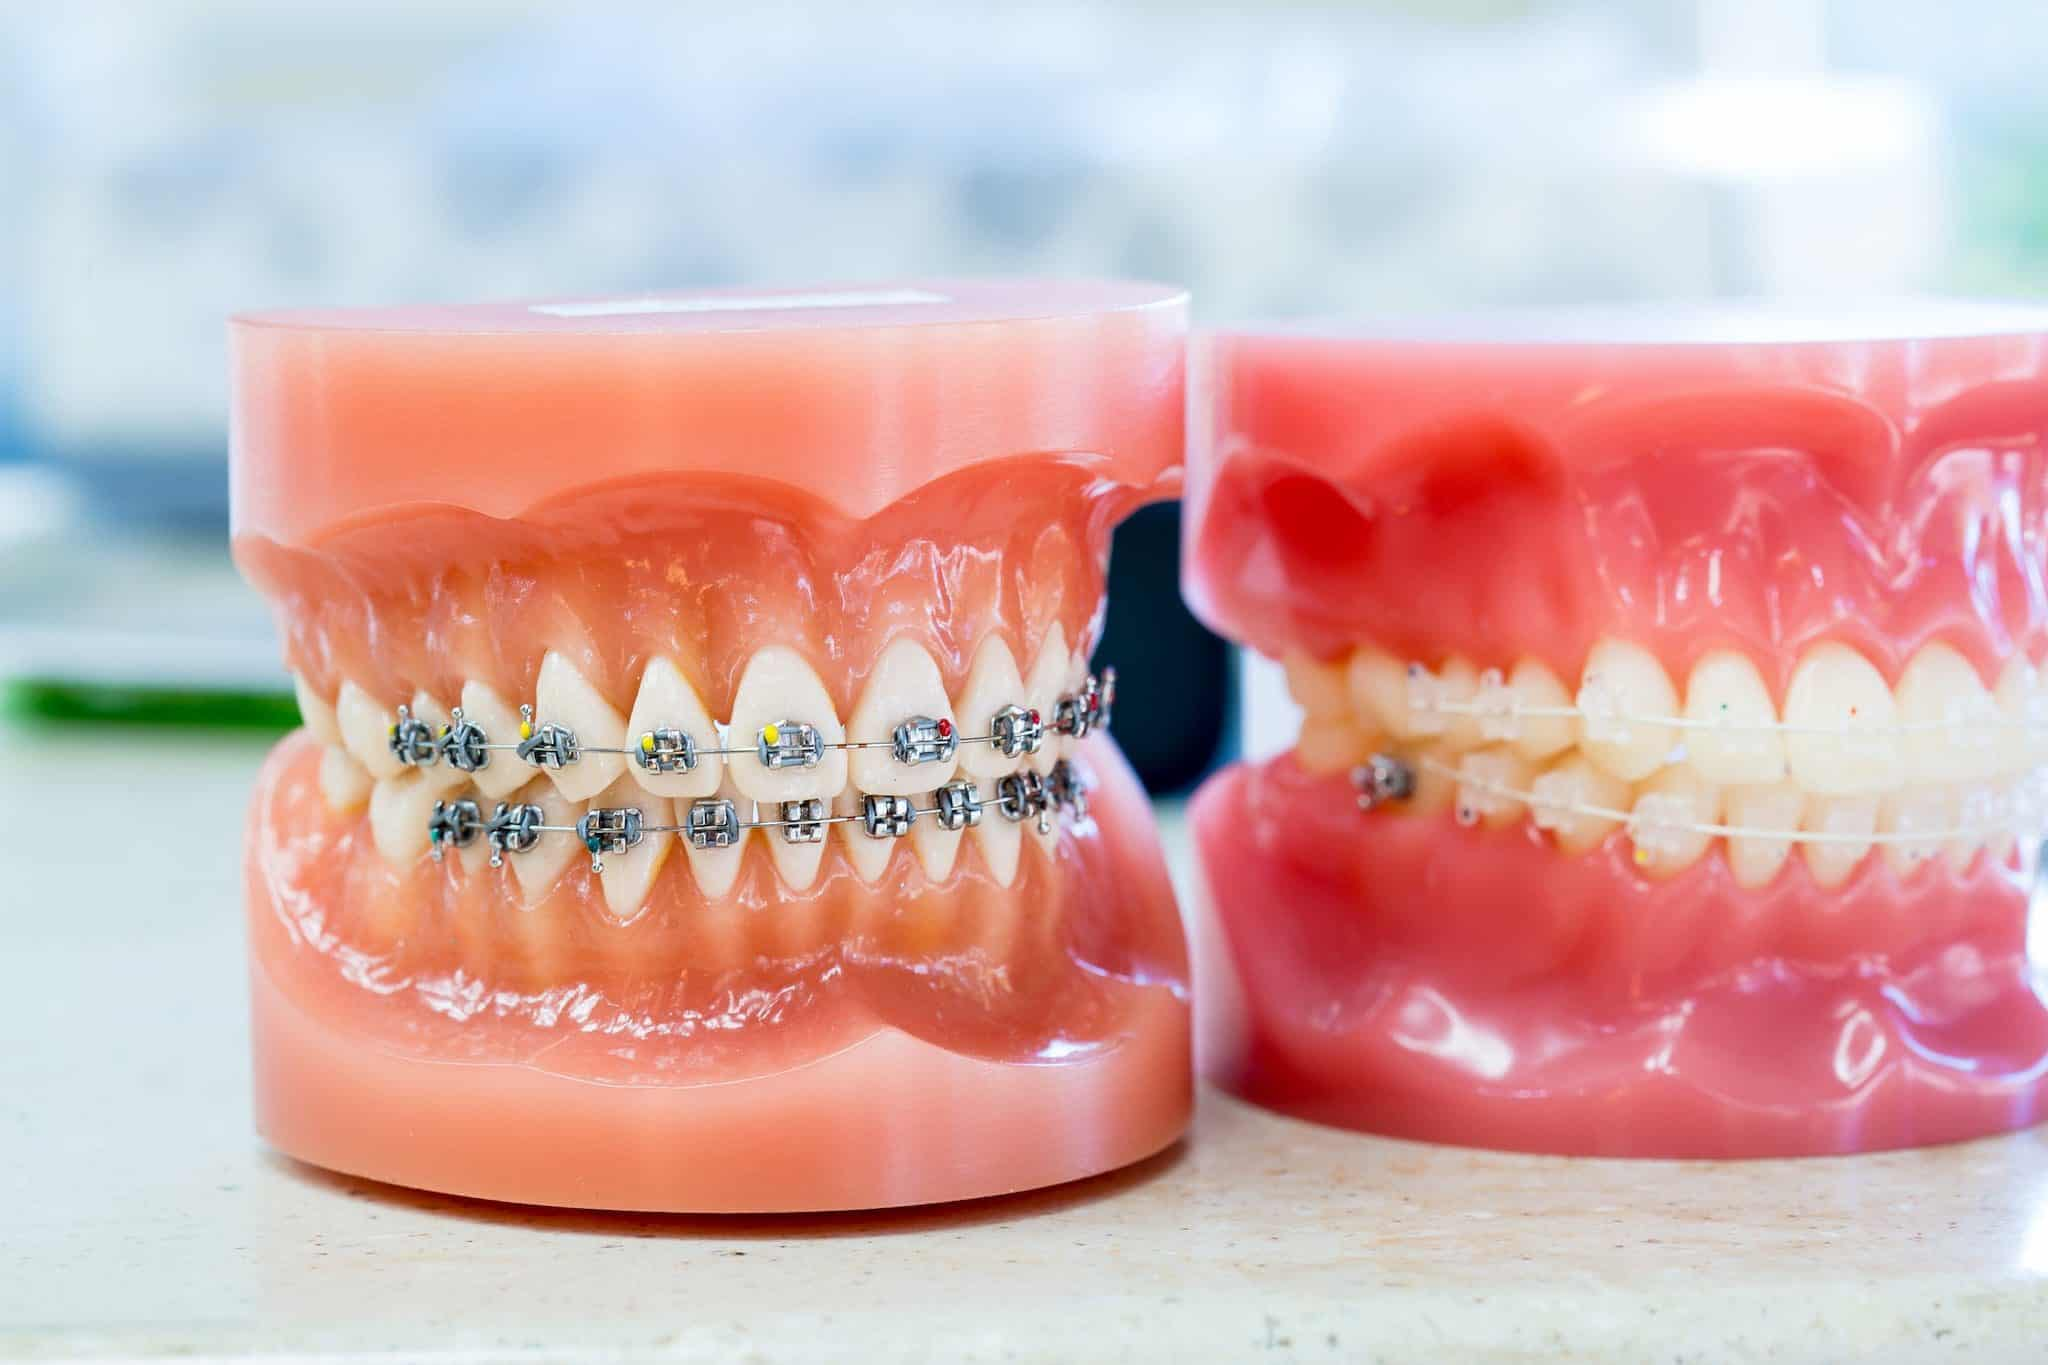 Ortho Essentials Appel Orthodontics 17 2048x1365 - Customized Braces & Orthodontic Treatment For Adults and Children